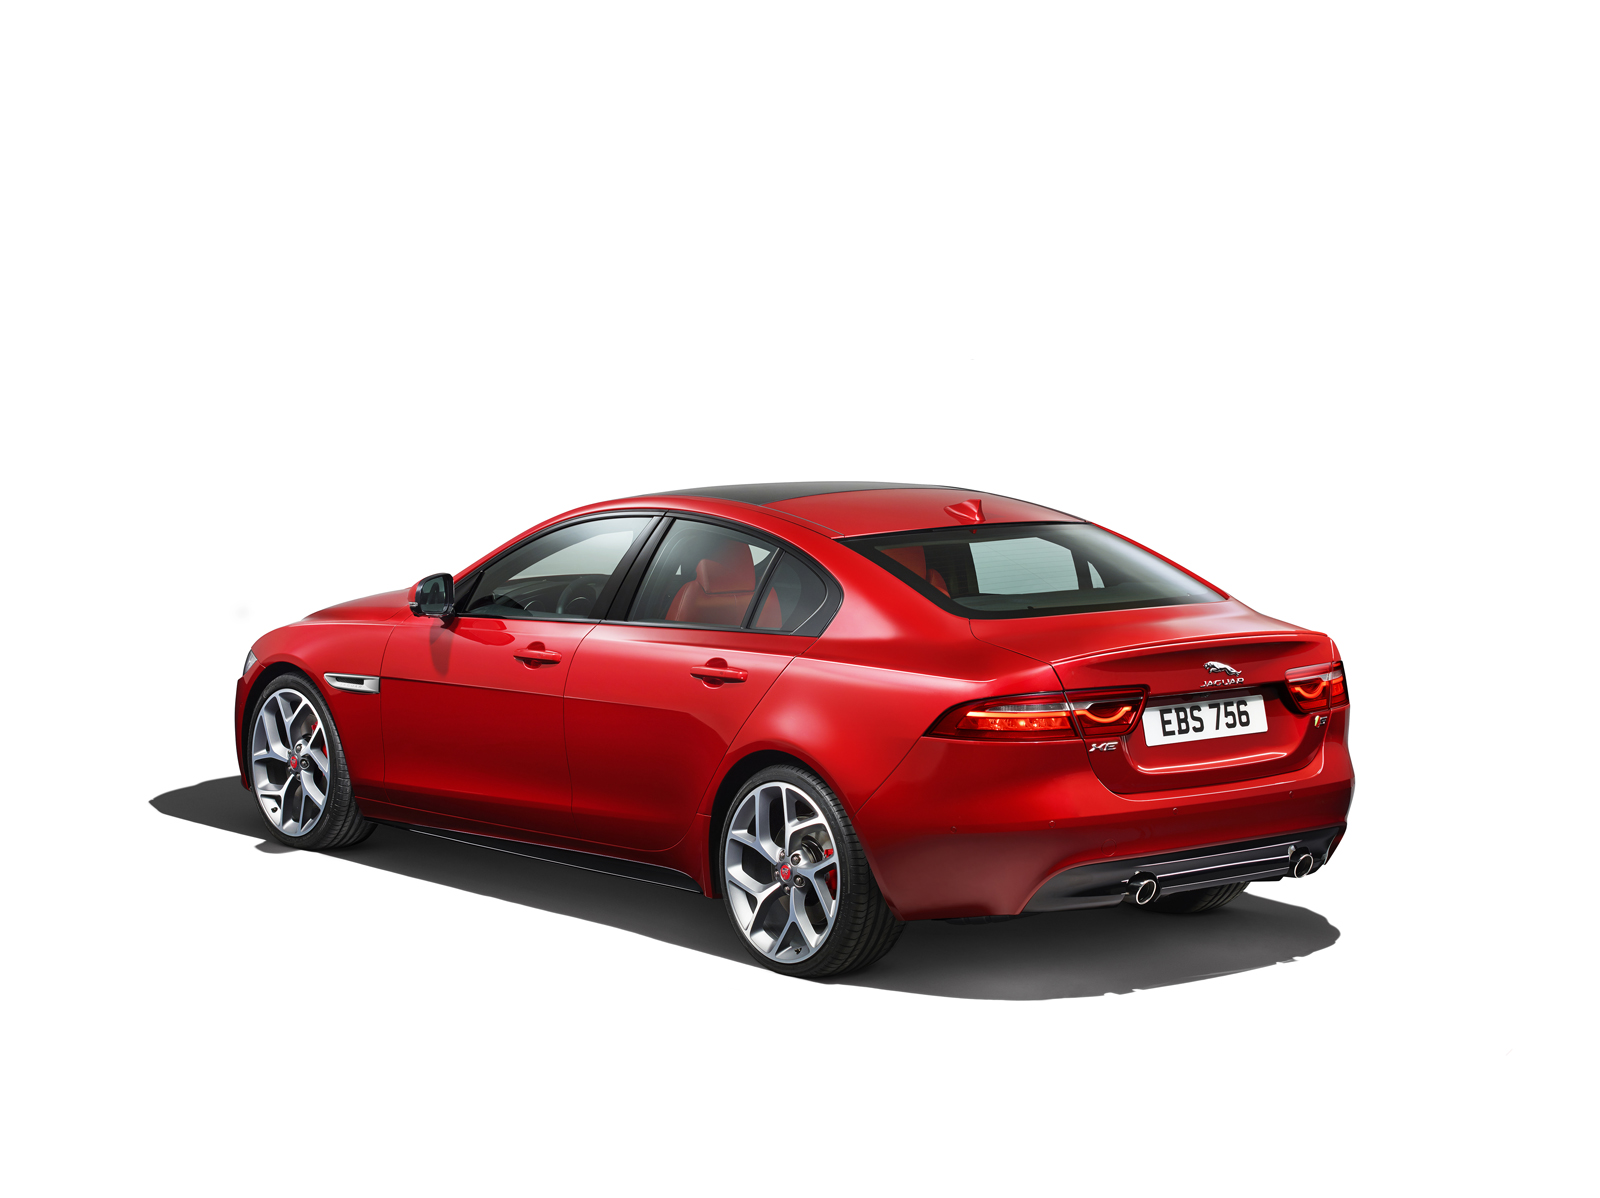 new jaguar xe makes north american debut at 2015 detroit show carscoops. Black Bedroom Furniture Sets. Home Design Ideas